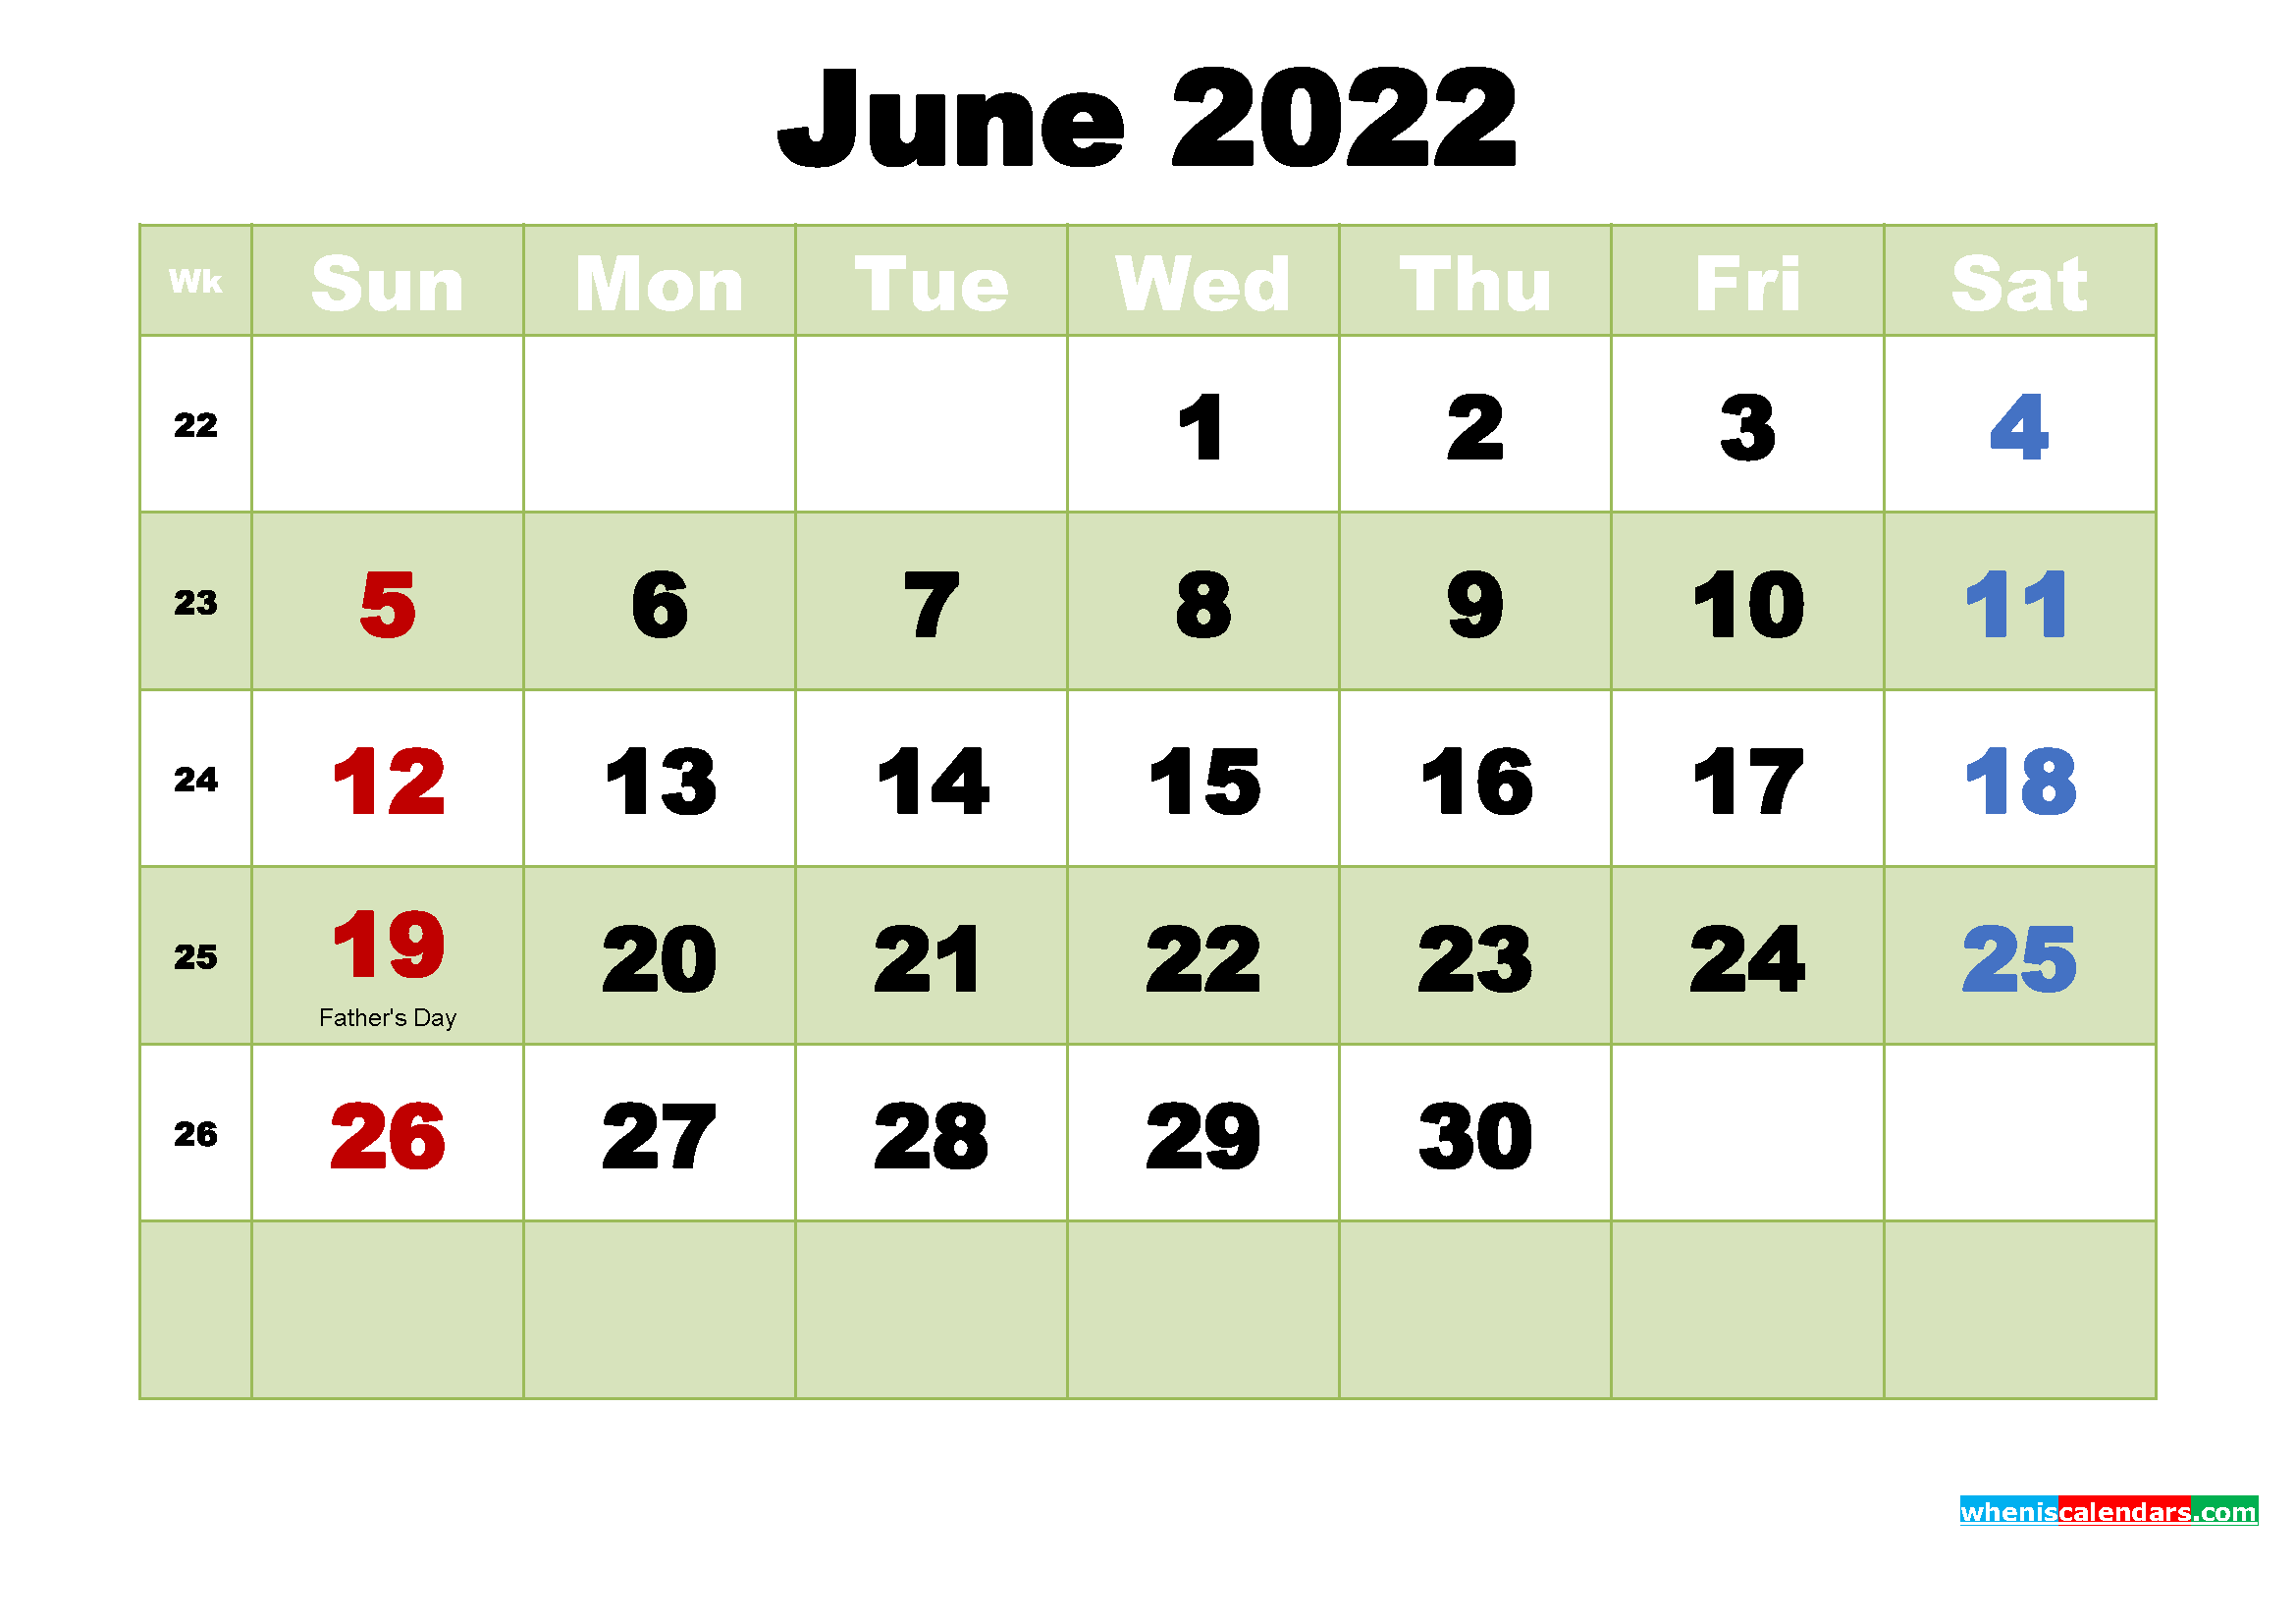 Free June 2022 Printable Calendar Template Word, PDF